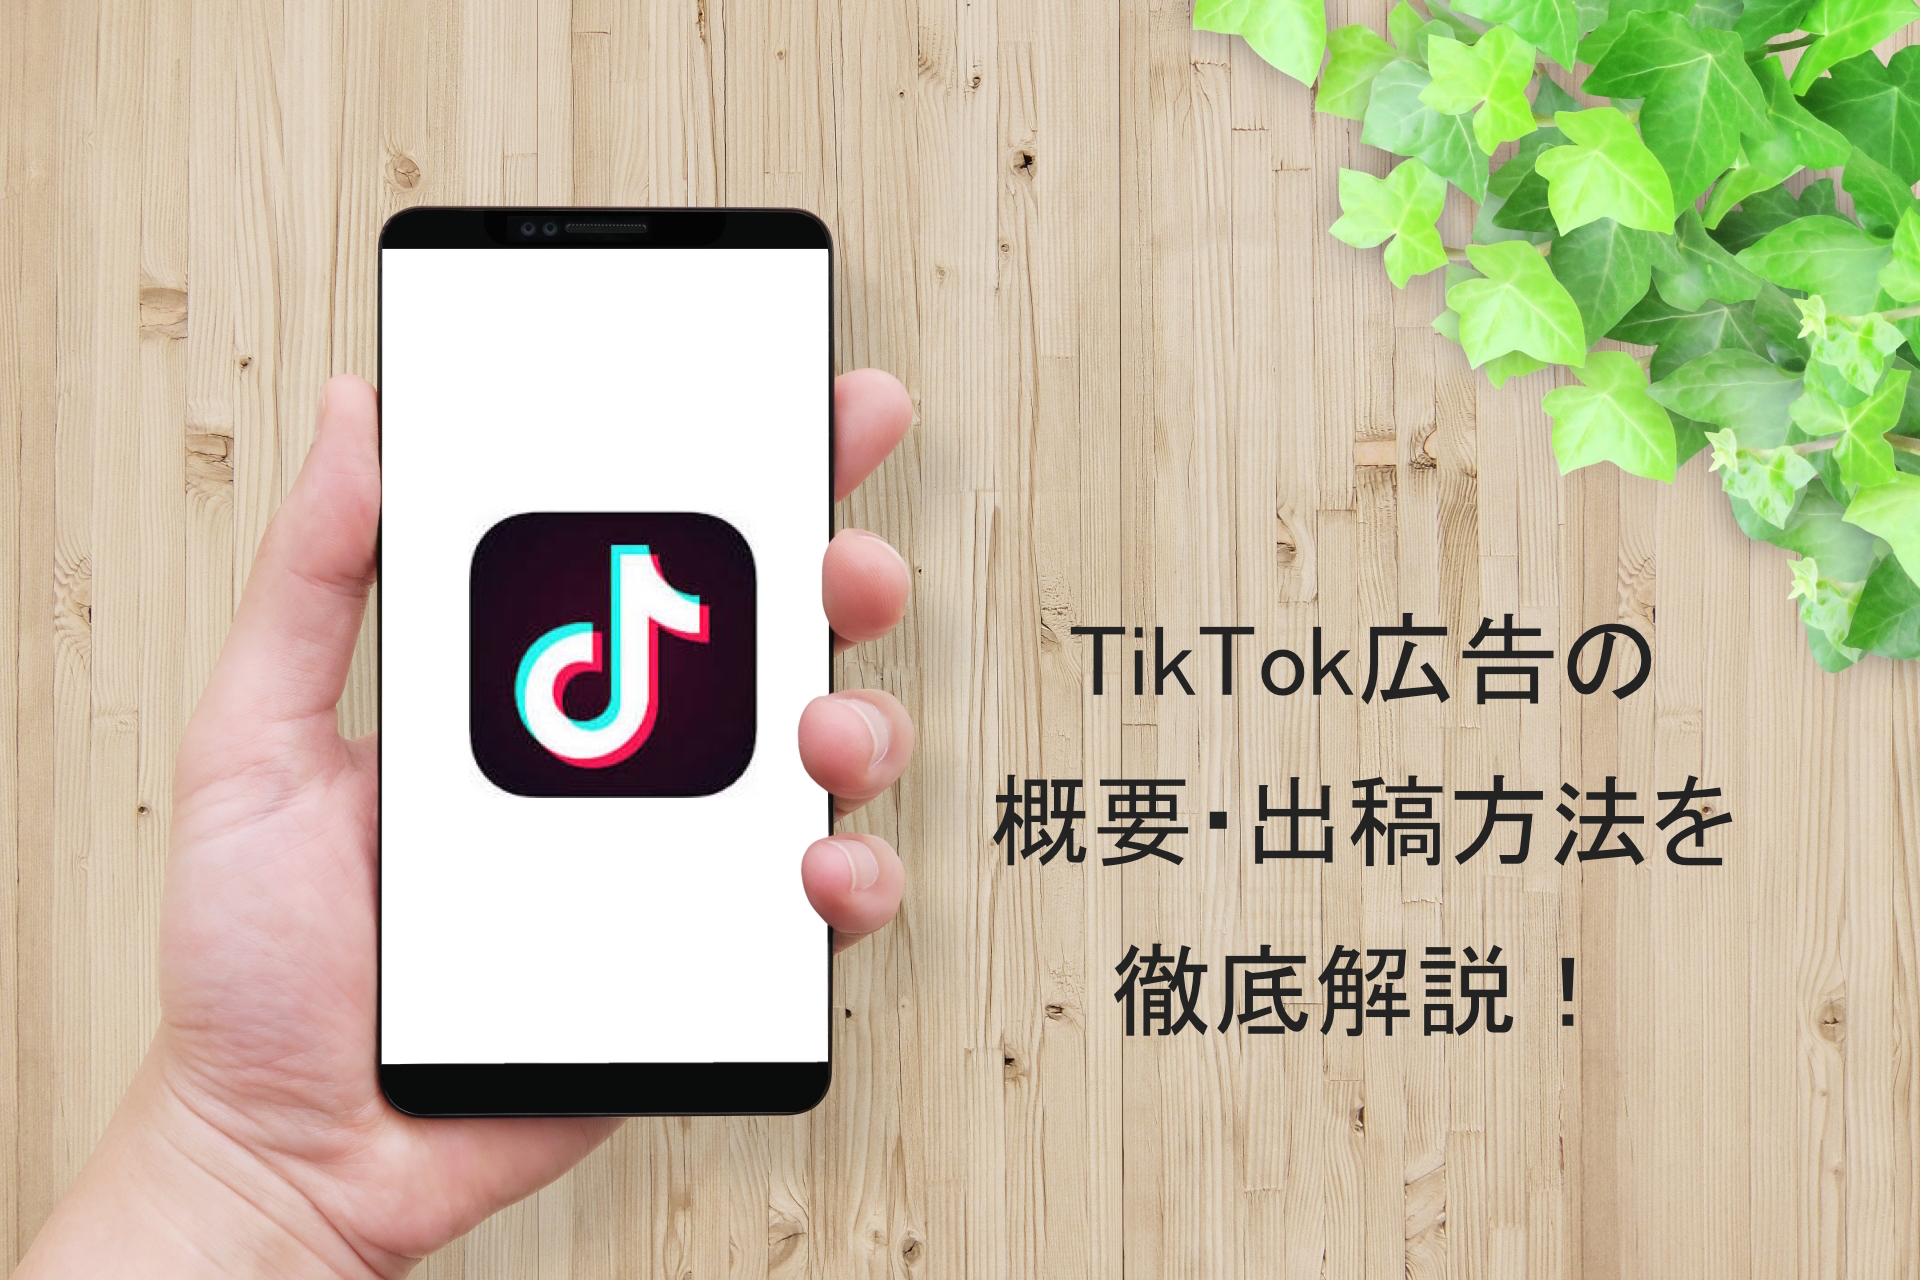 tiktokad-outline-explanation-1